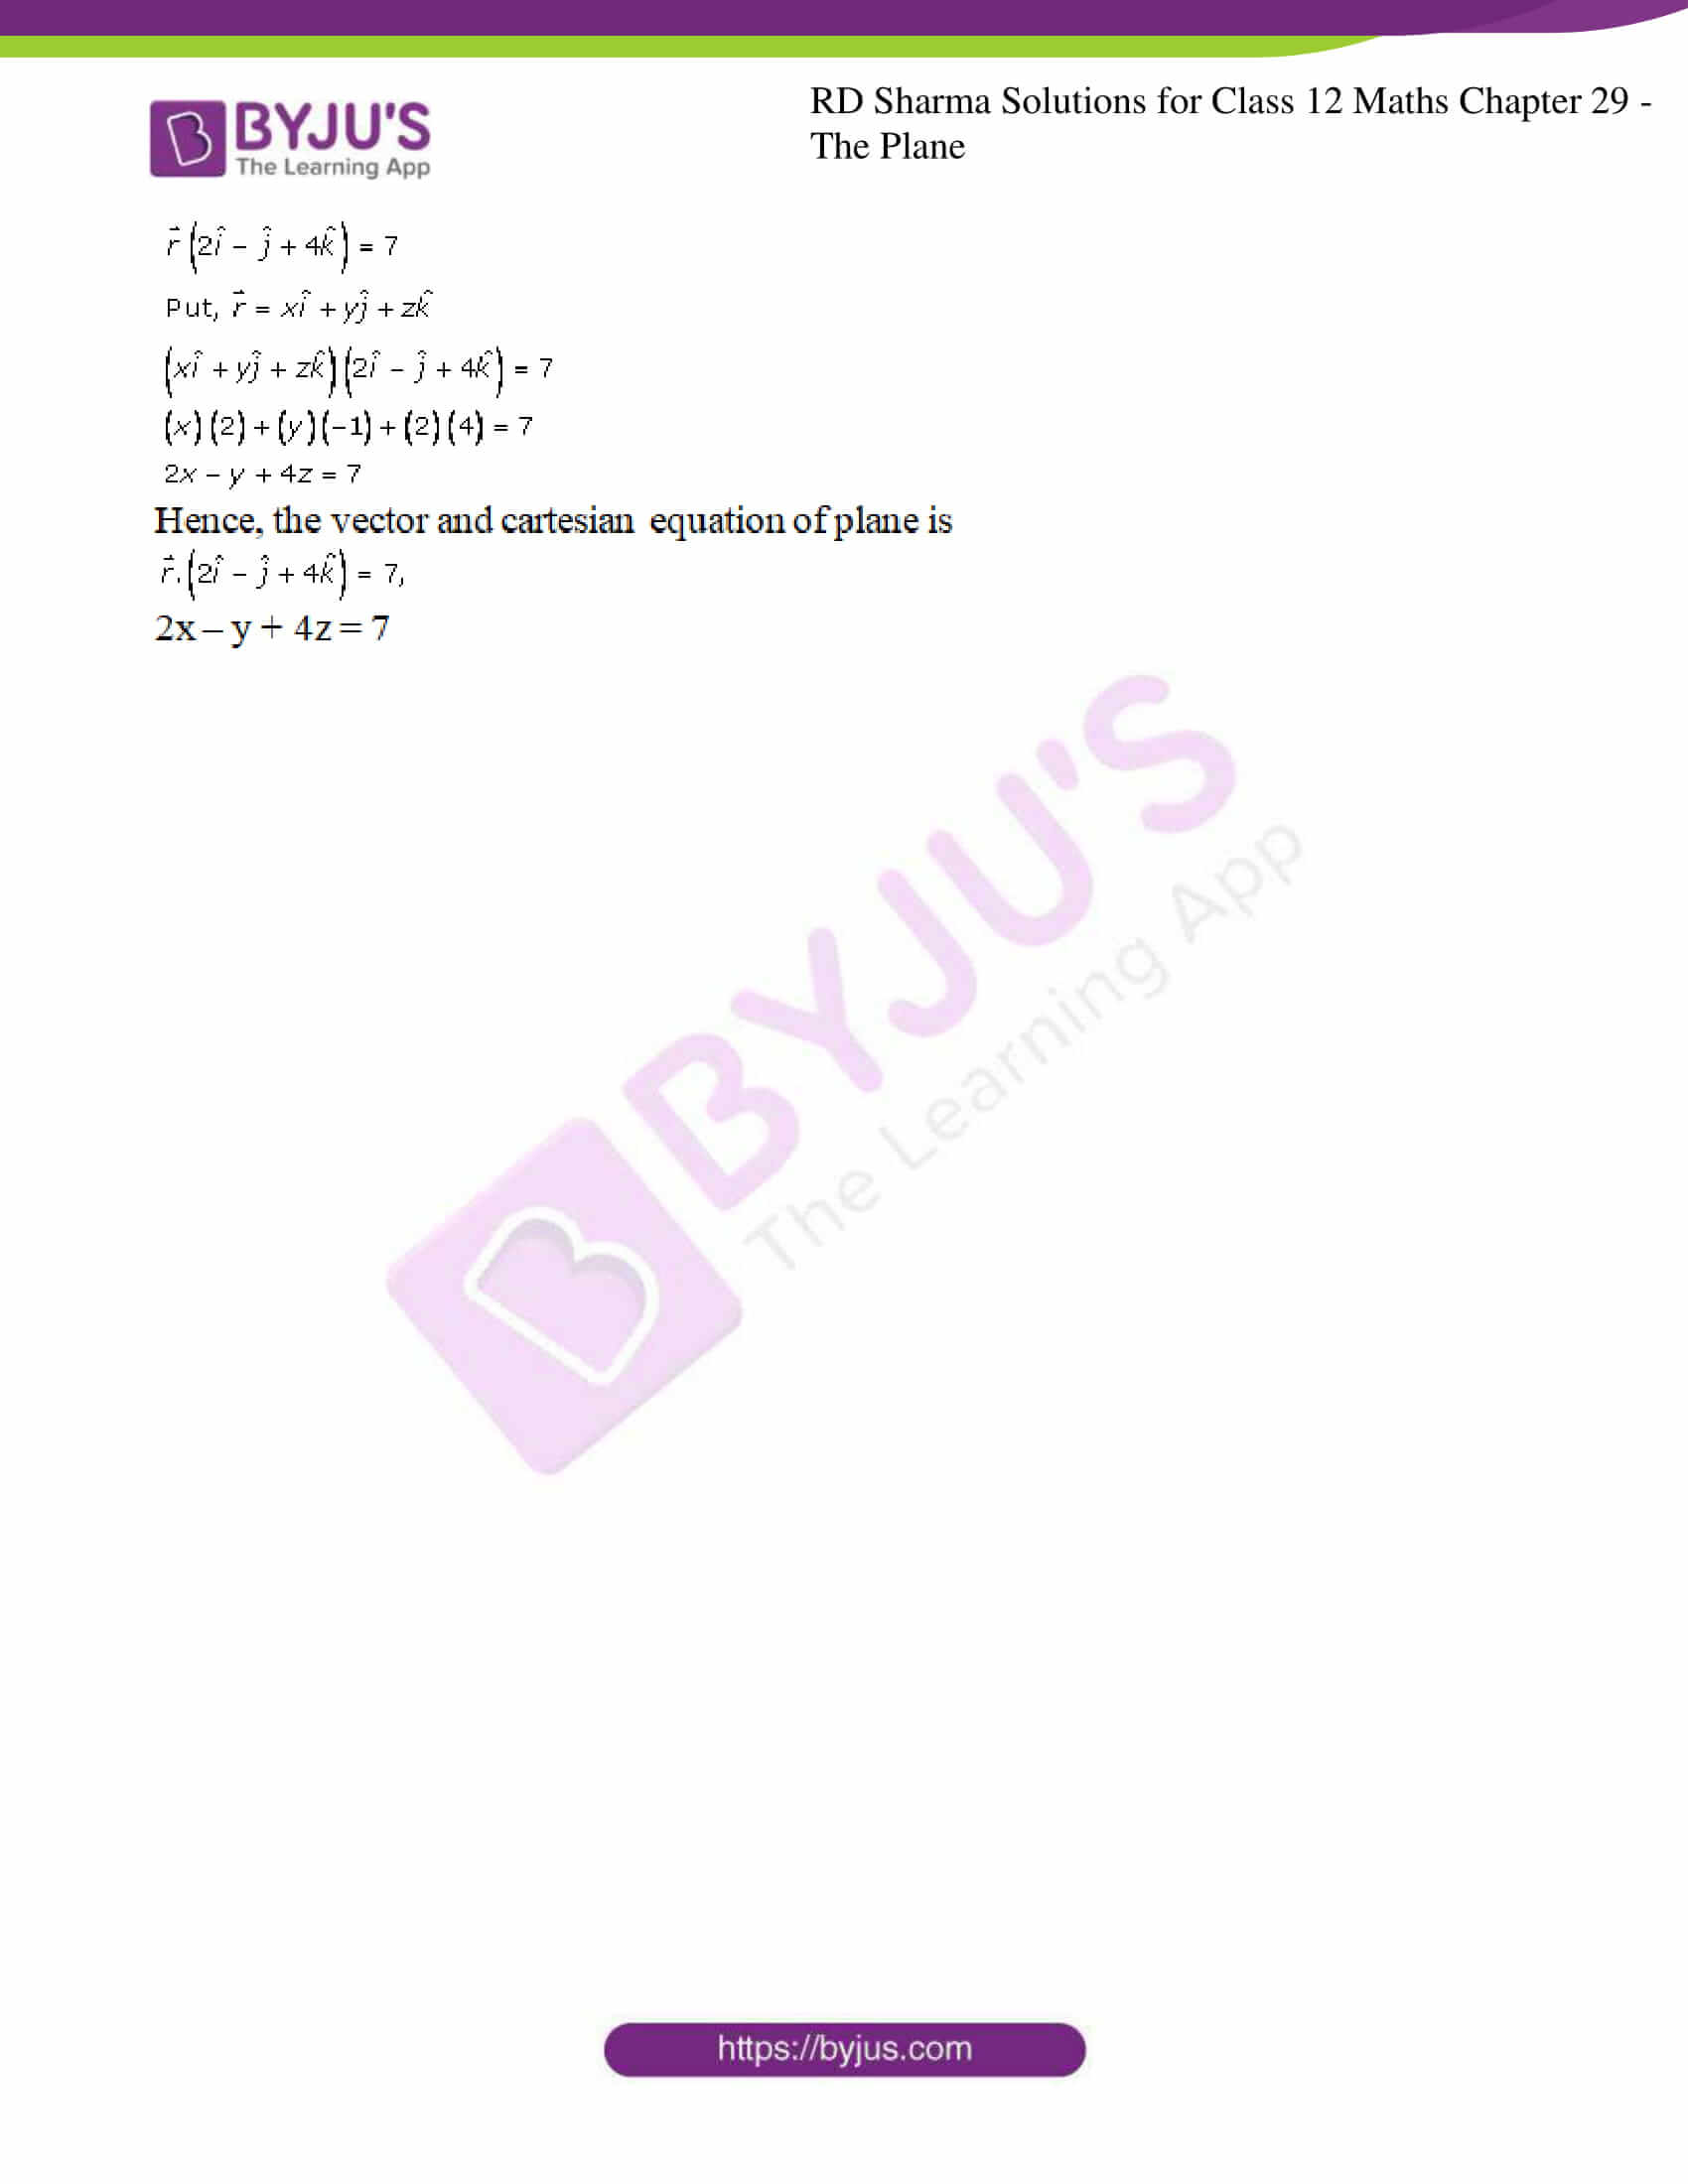 rd sharma solutions for class 12 maths chapter 29 ex 3 5